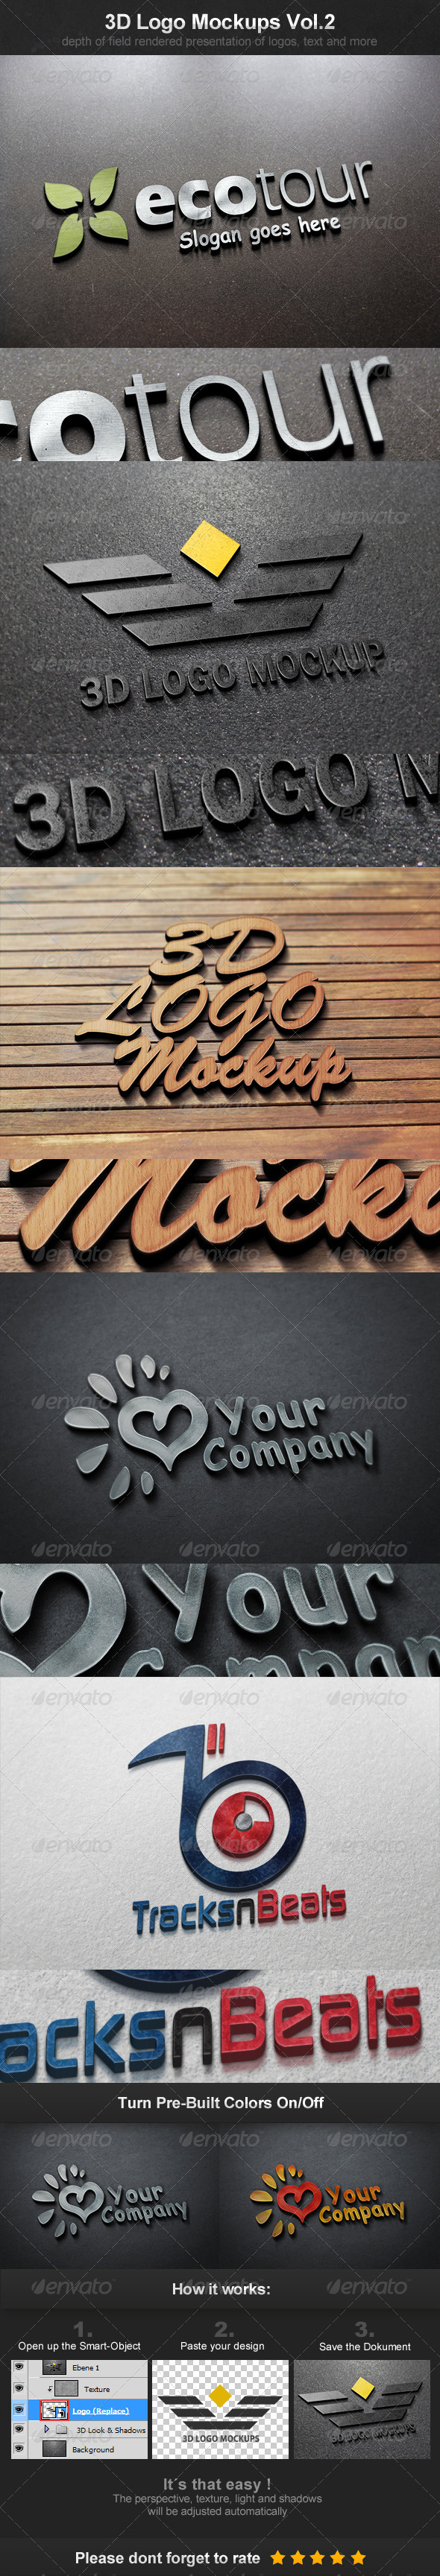 GraphicRiver 3D Logo Mockups Vol.2 3887513